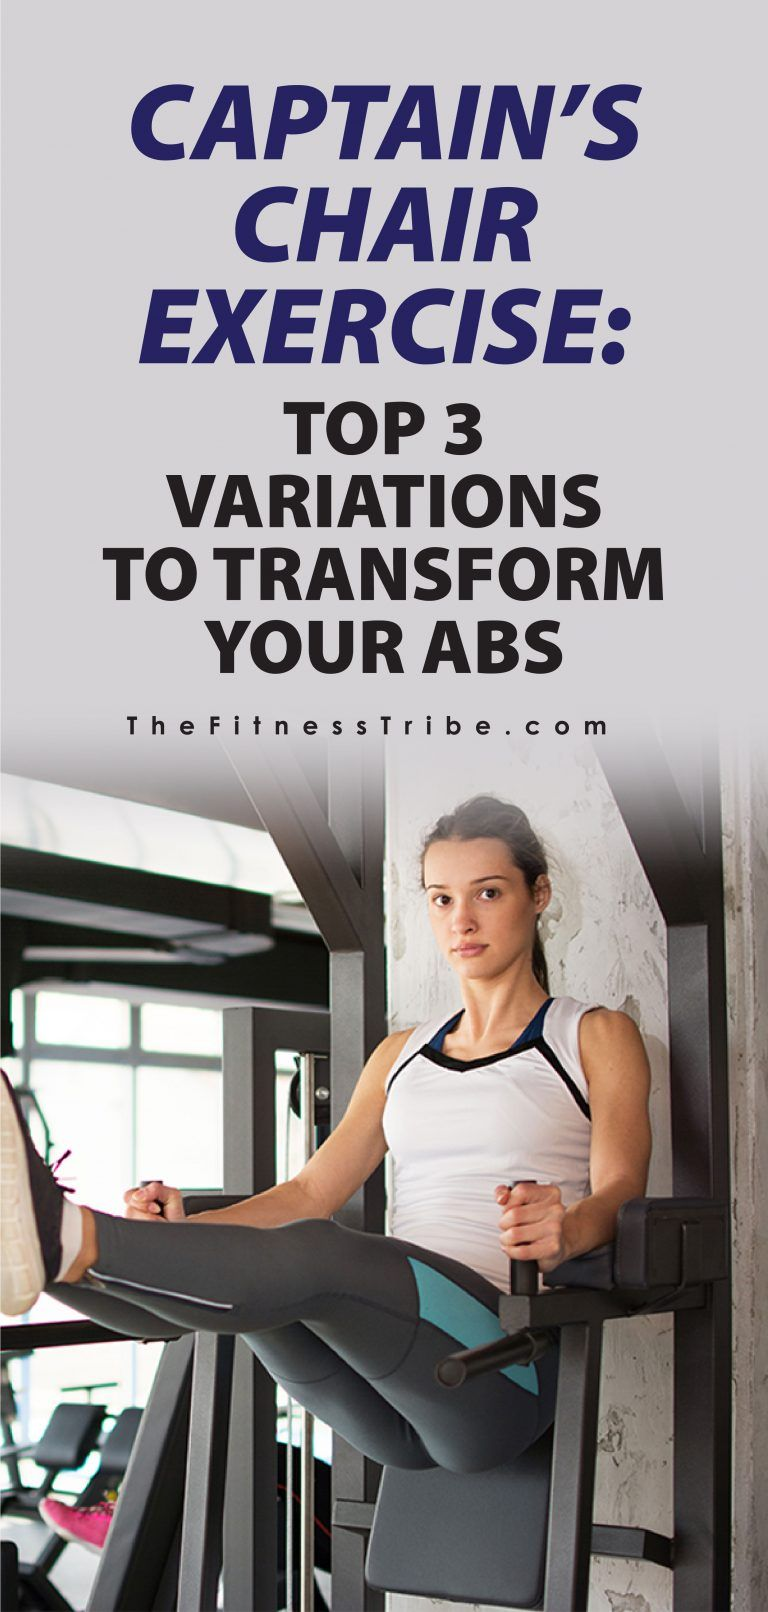 Captains Chair Exercise Top 3 Variations To Transform Your Abs Chair Exercises Exercise Chair Exercises For Abs